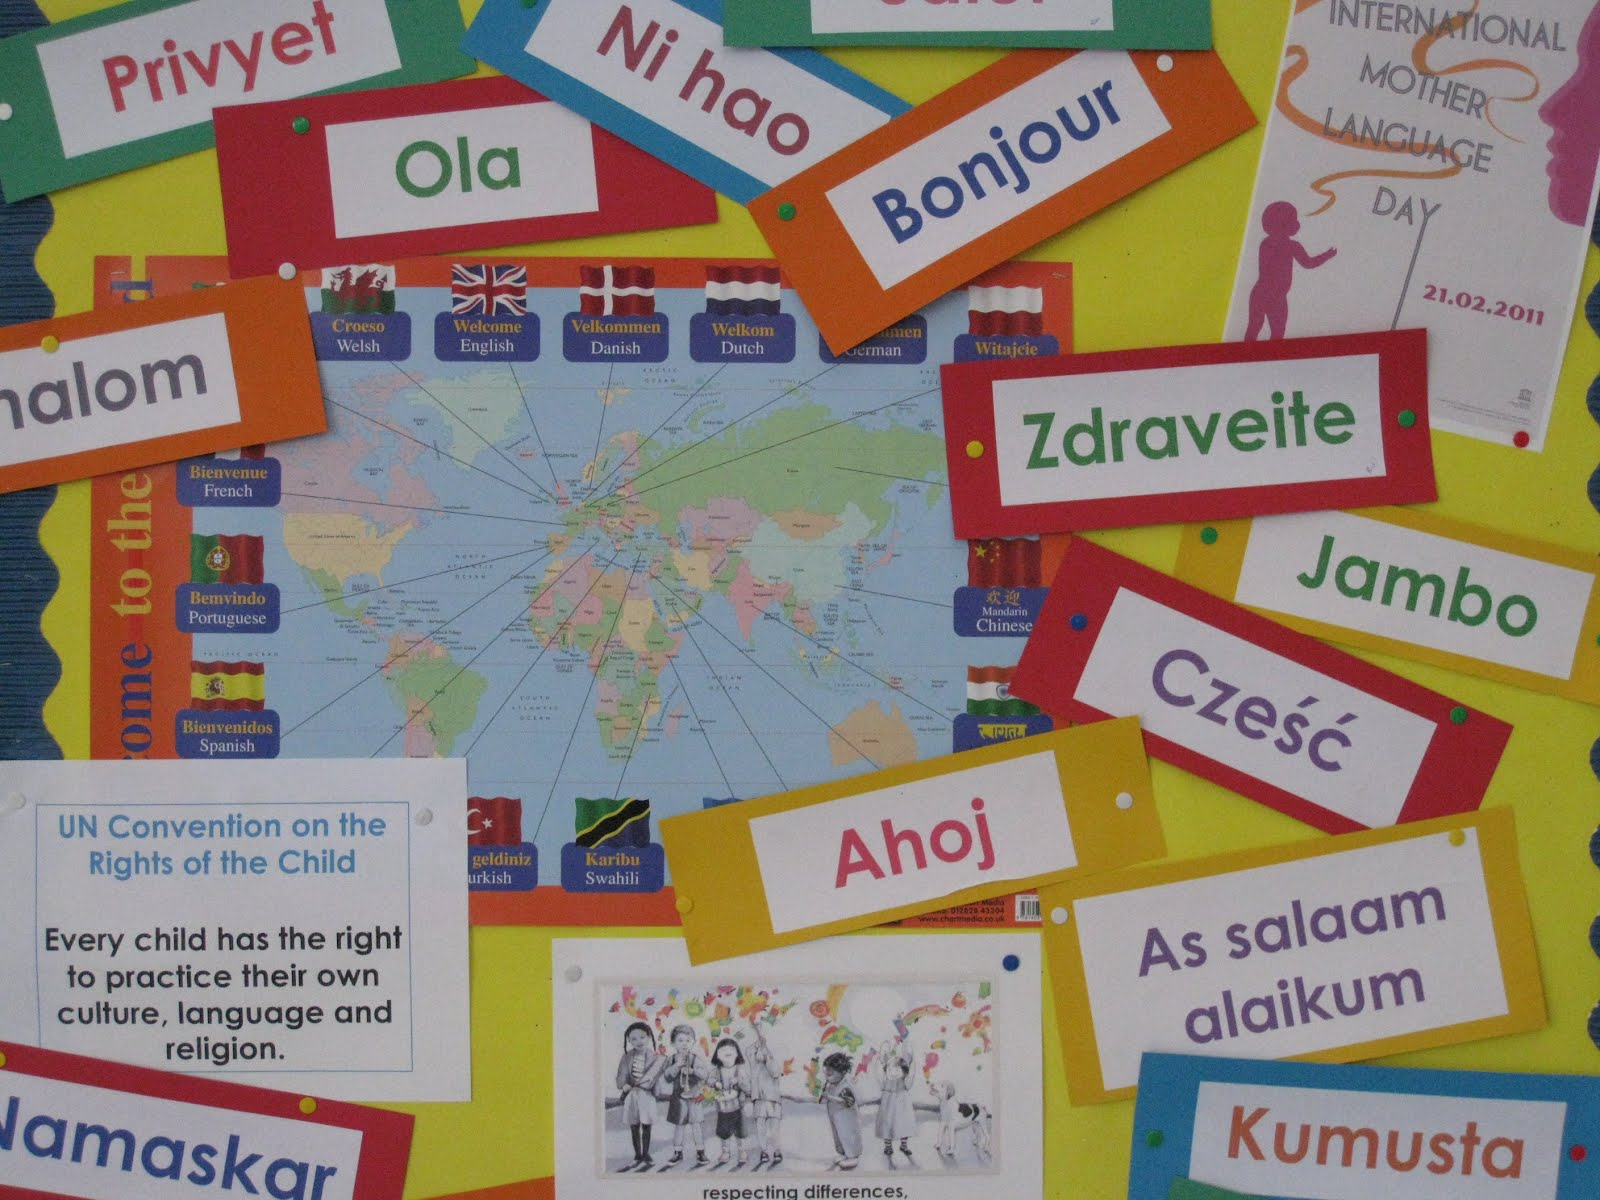 Pourquoi Pas International Mother Language Day